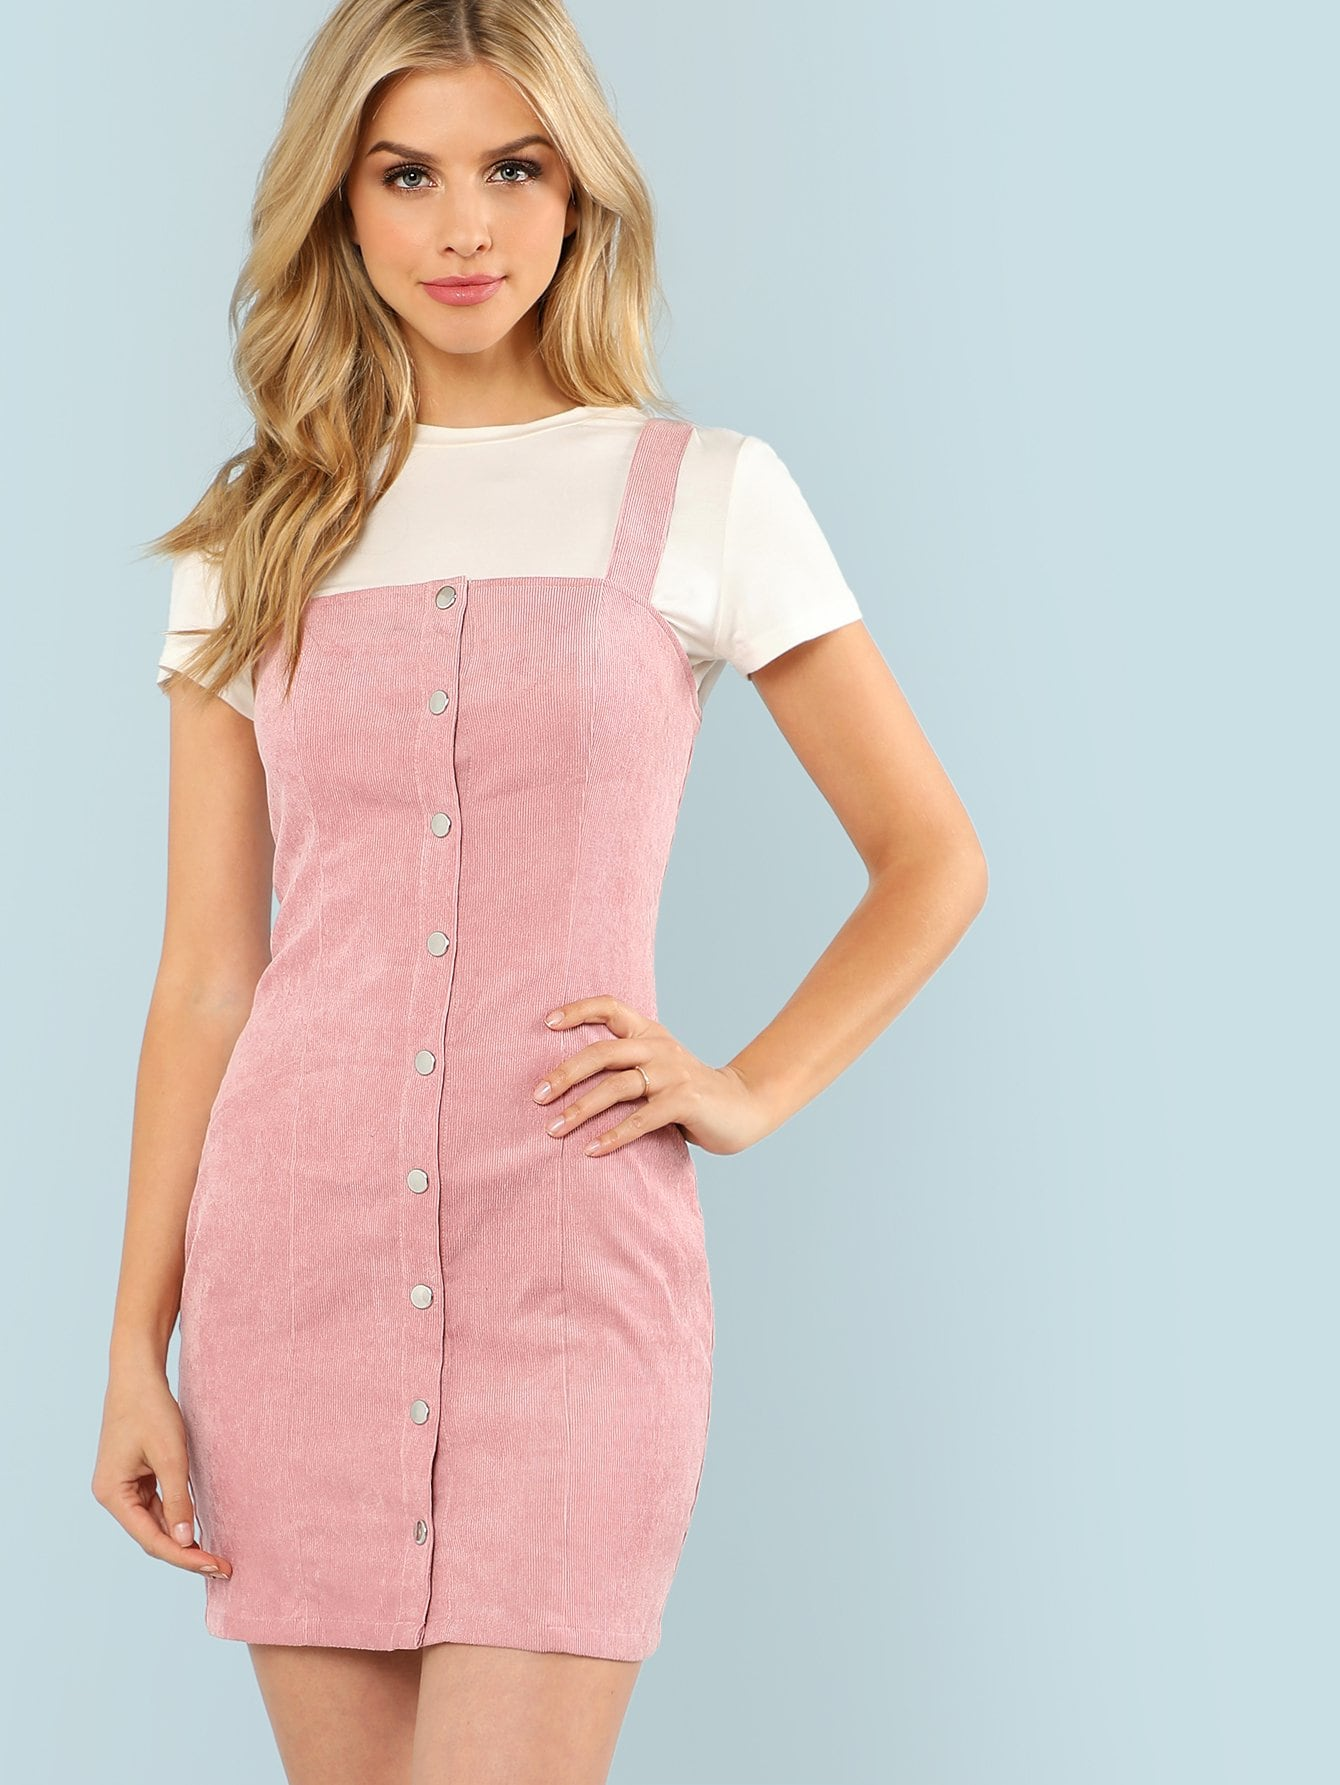 Thick Strap Button Up Front Cord Dress button front strap dress